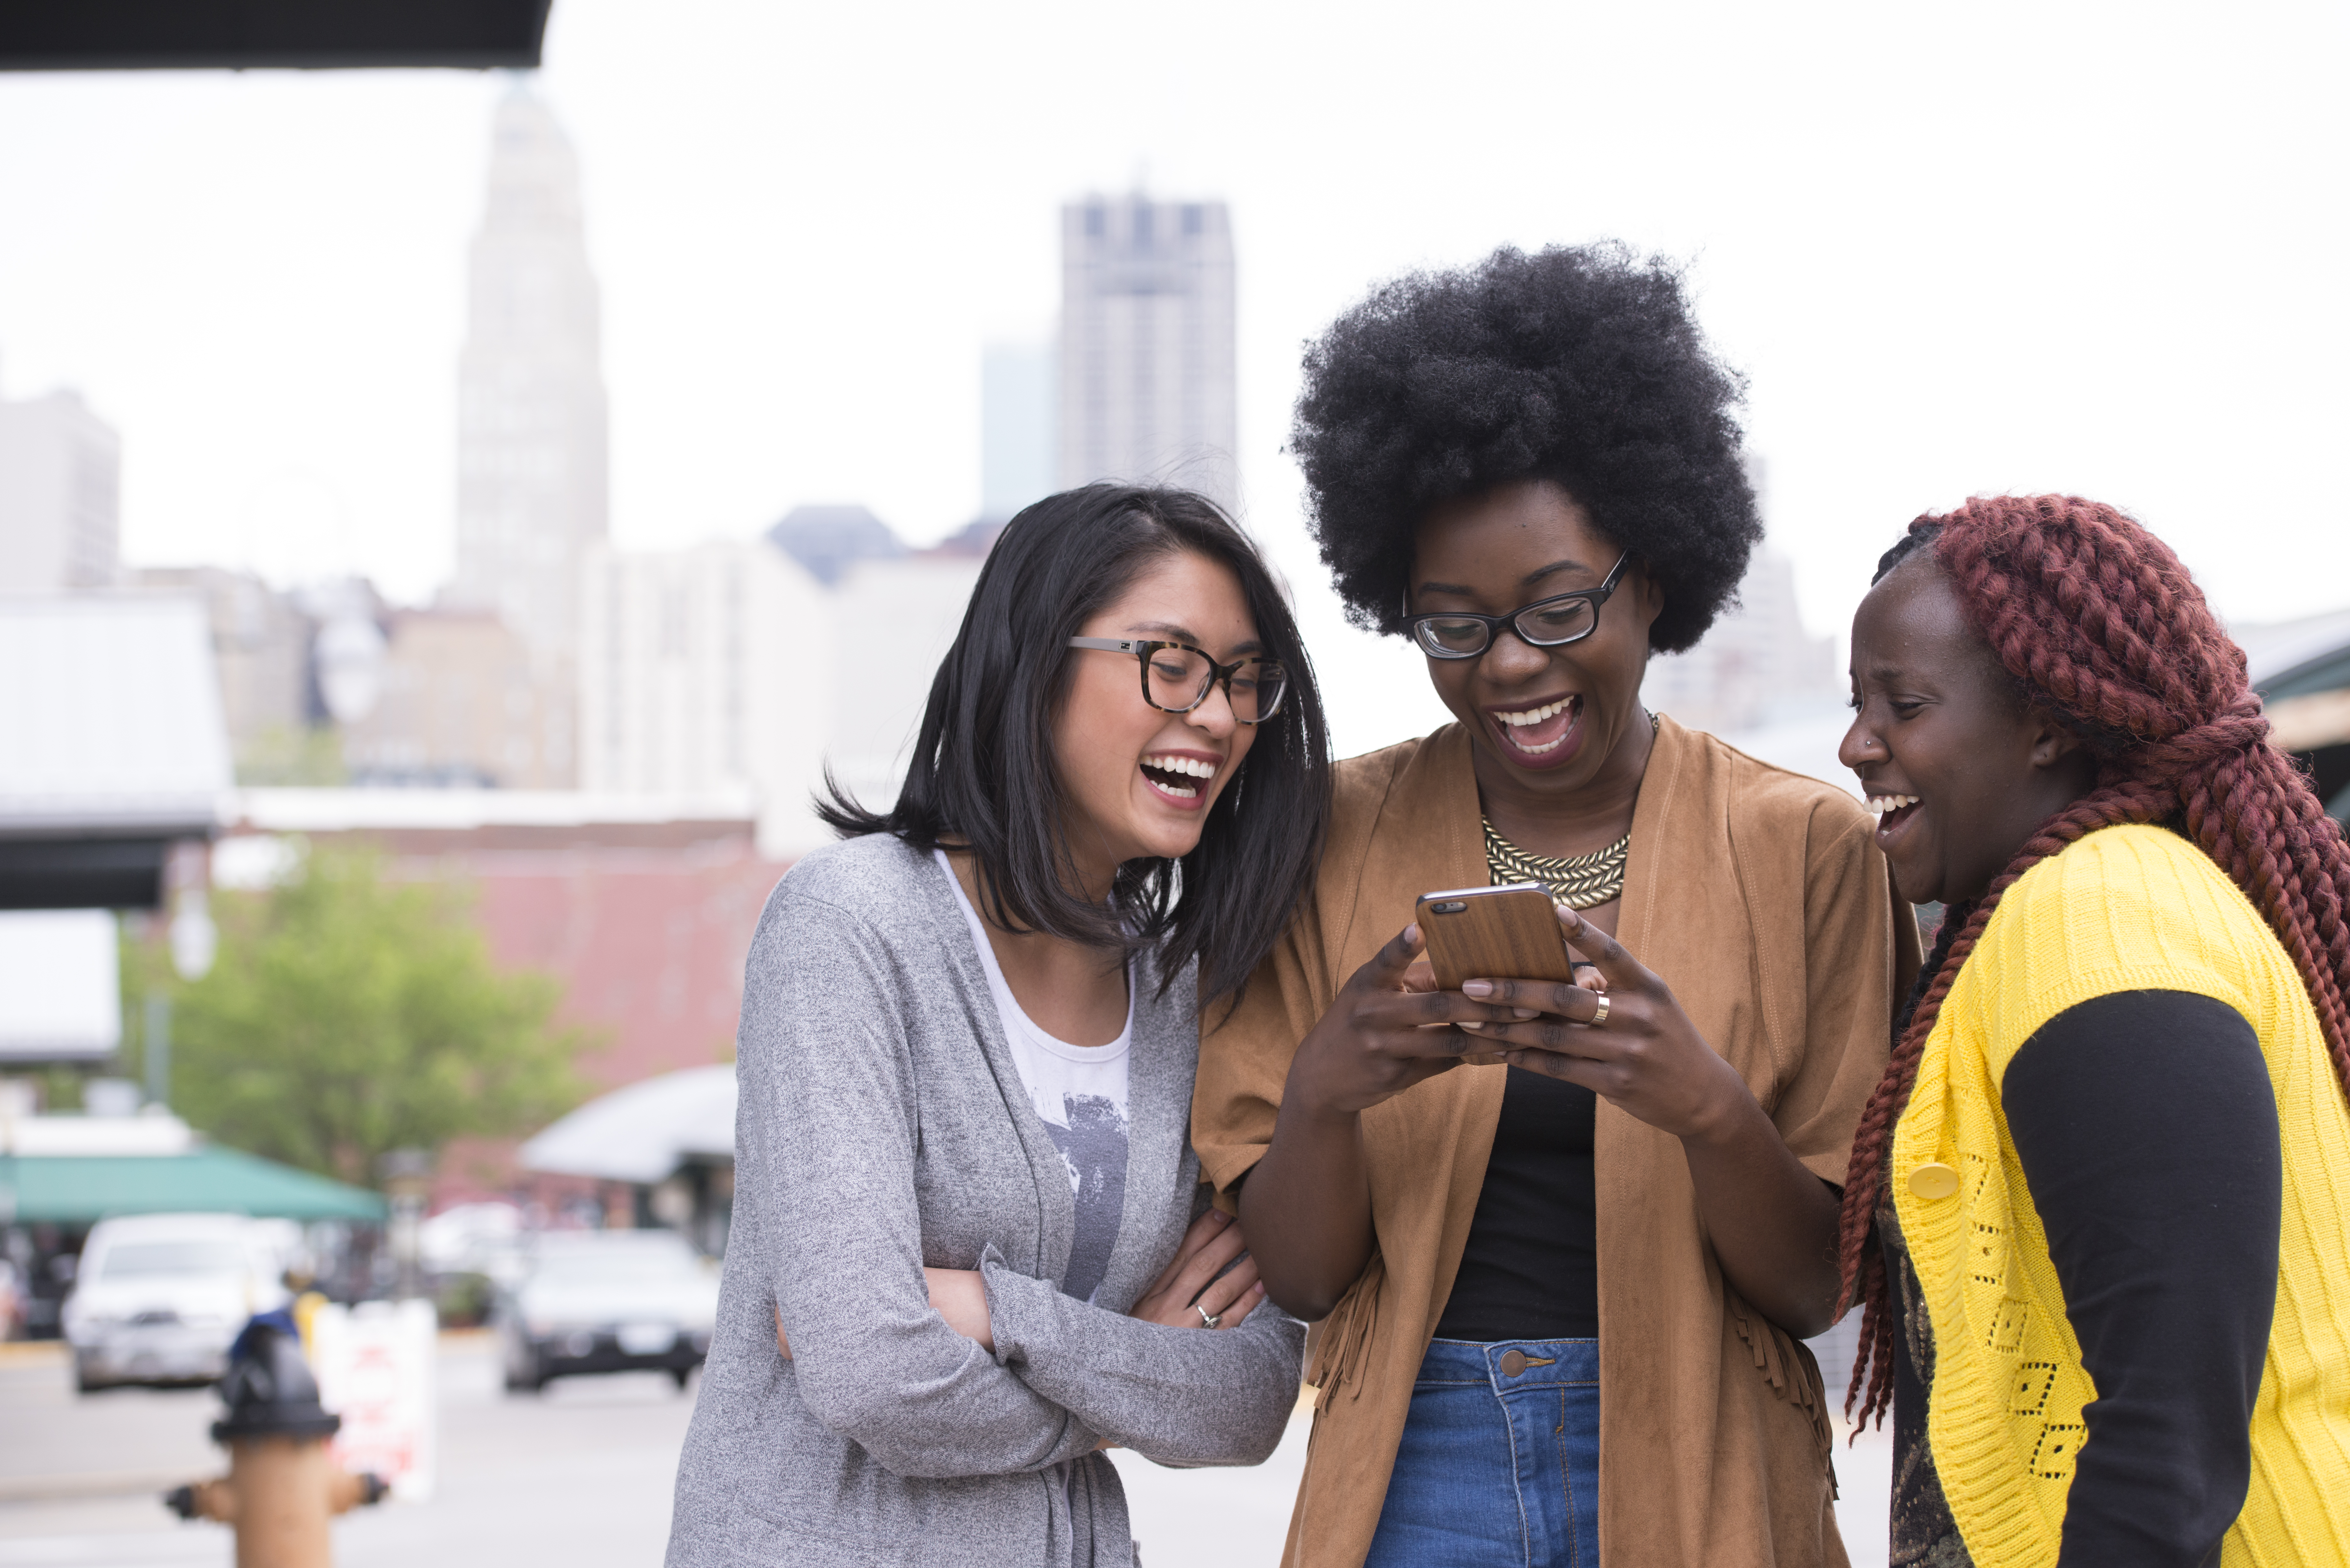 Three students look at phone and smile with Kansas City skyline in background